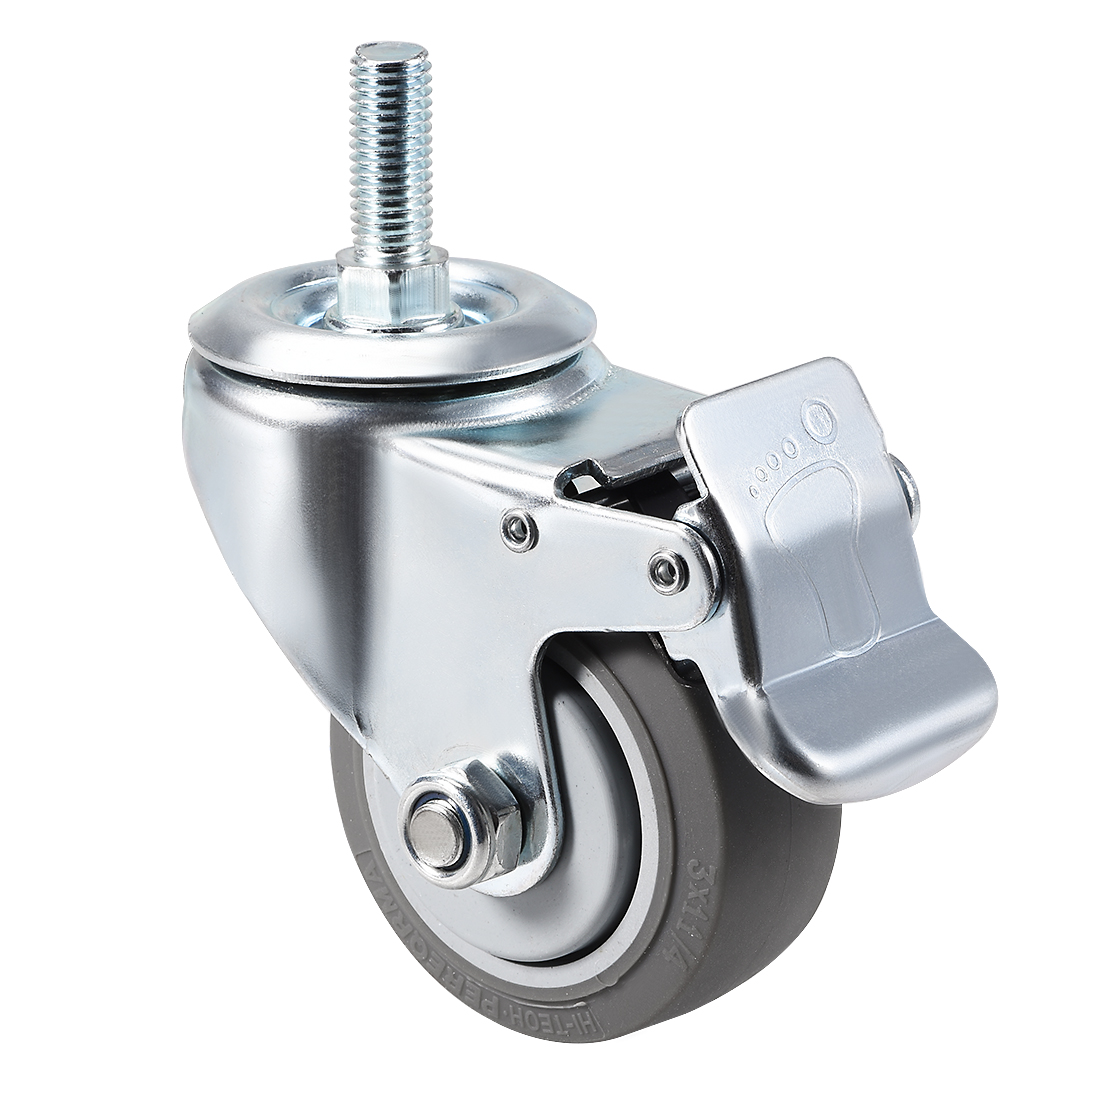 Swivel Caster Wheels TPR Caster 3 Inch Wheel M12 x 30mm Thread with Brake